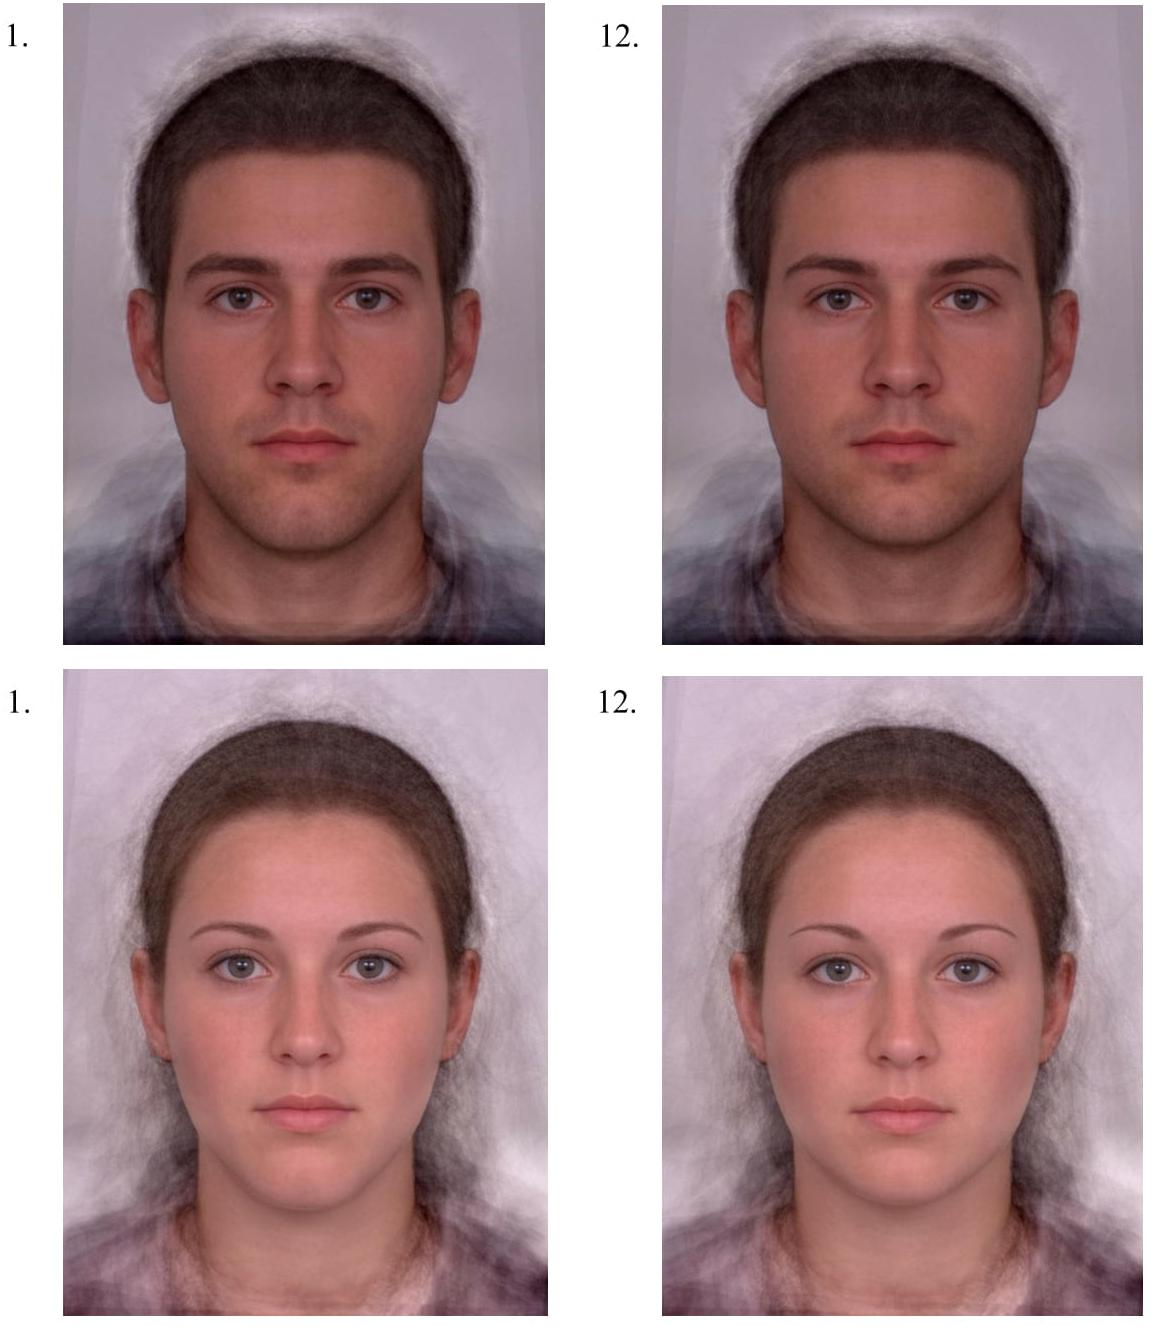 Frontiers | The Relative Contribution of Jawbone and Cheekbone